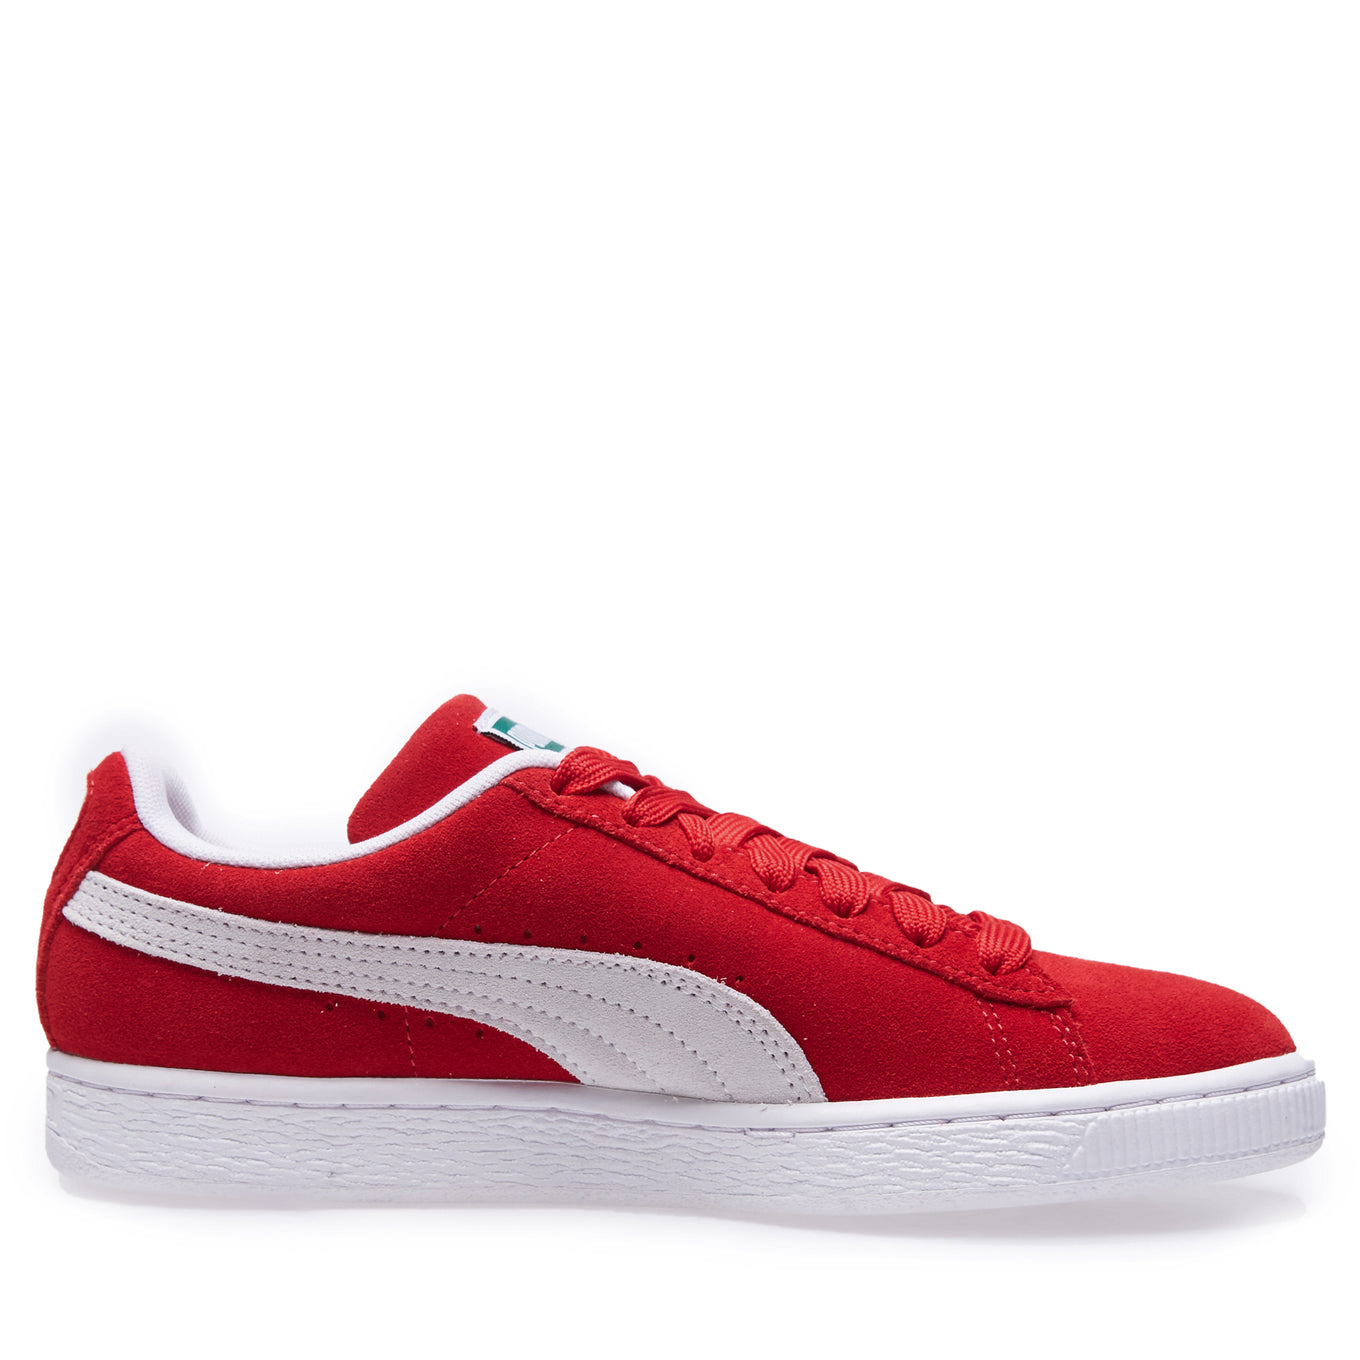 Puma Classic+ Team Regal